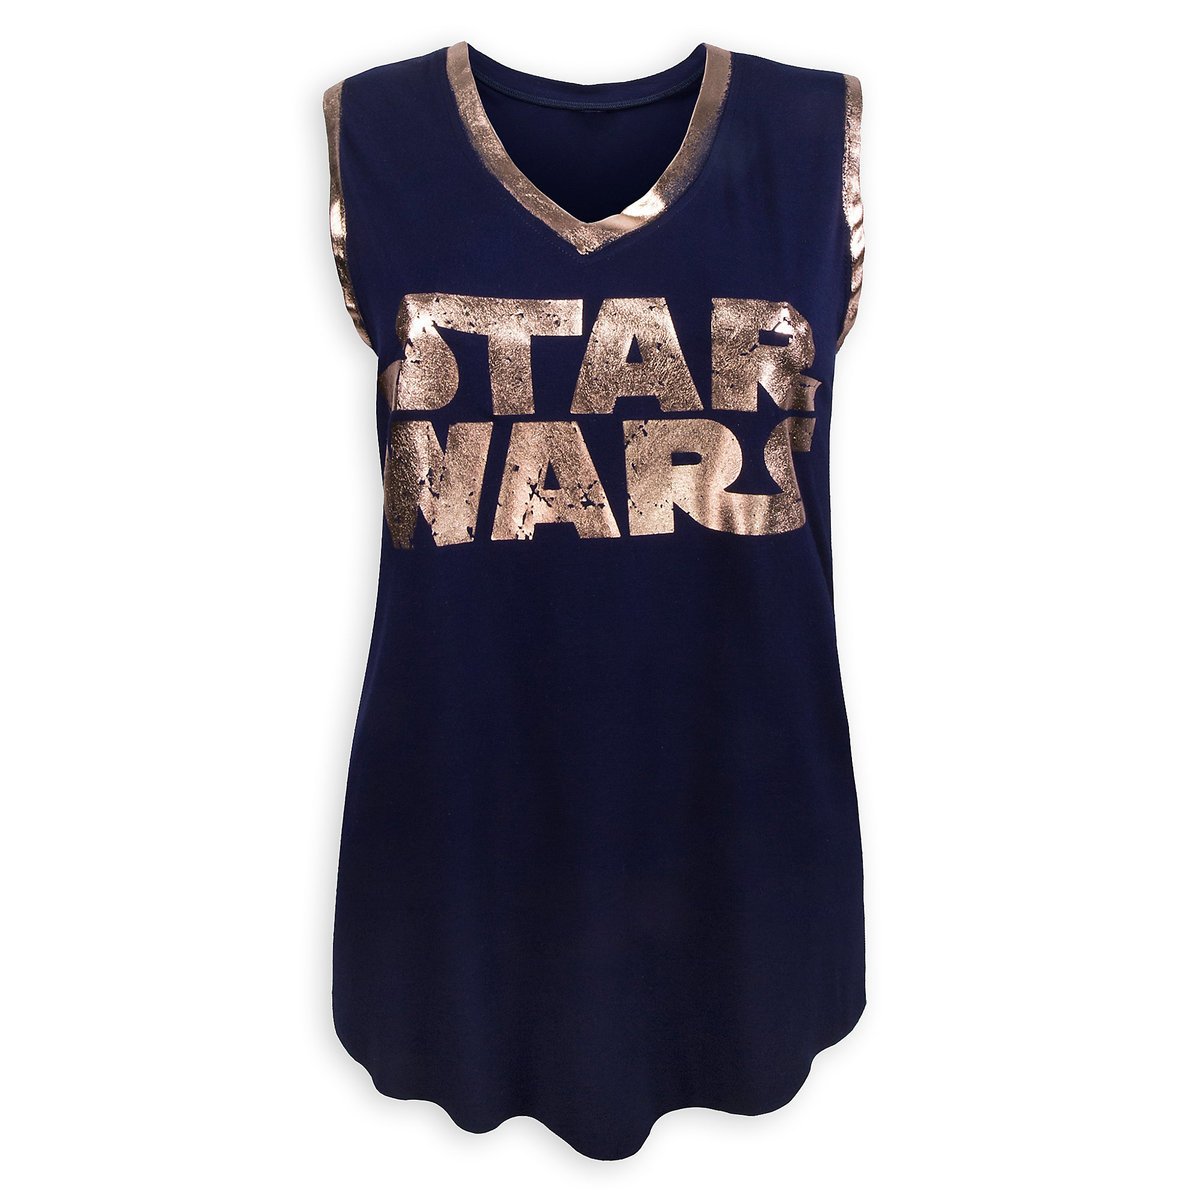 aaae3a244e3d4 Product Image of Star Wars Tank Top for Women   1